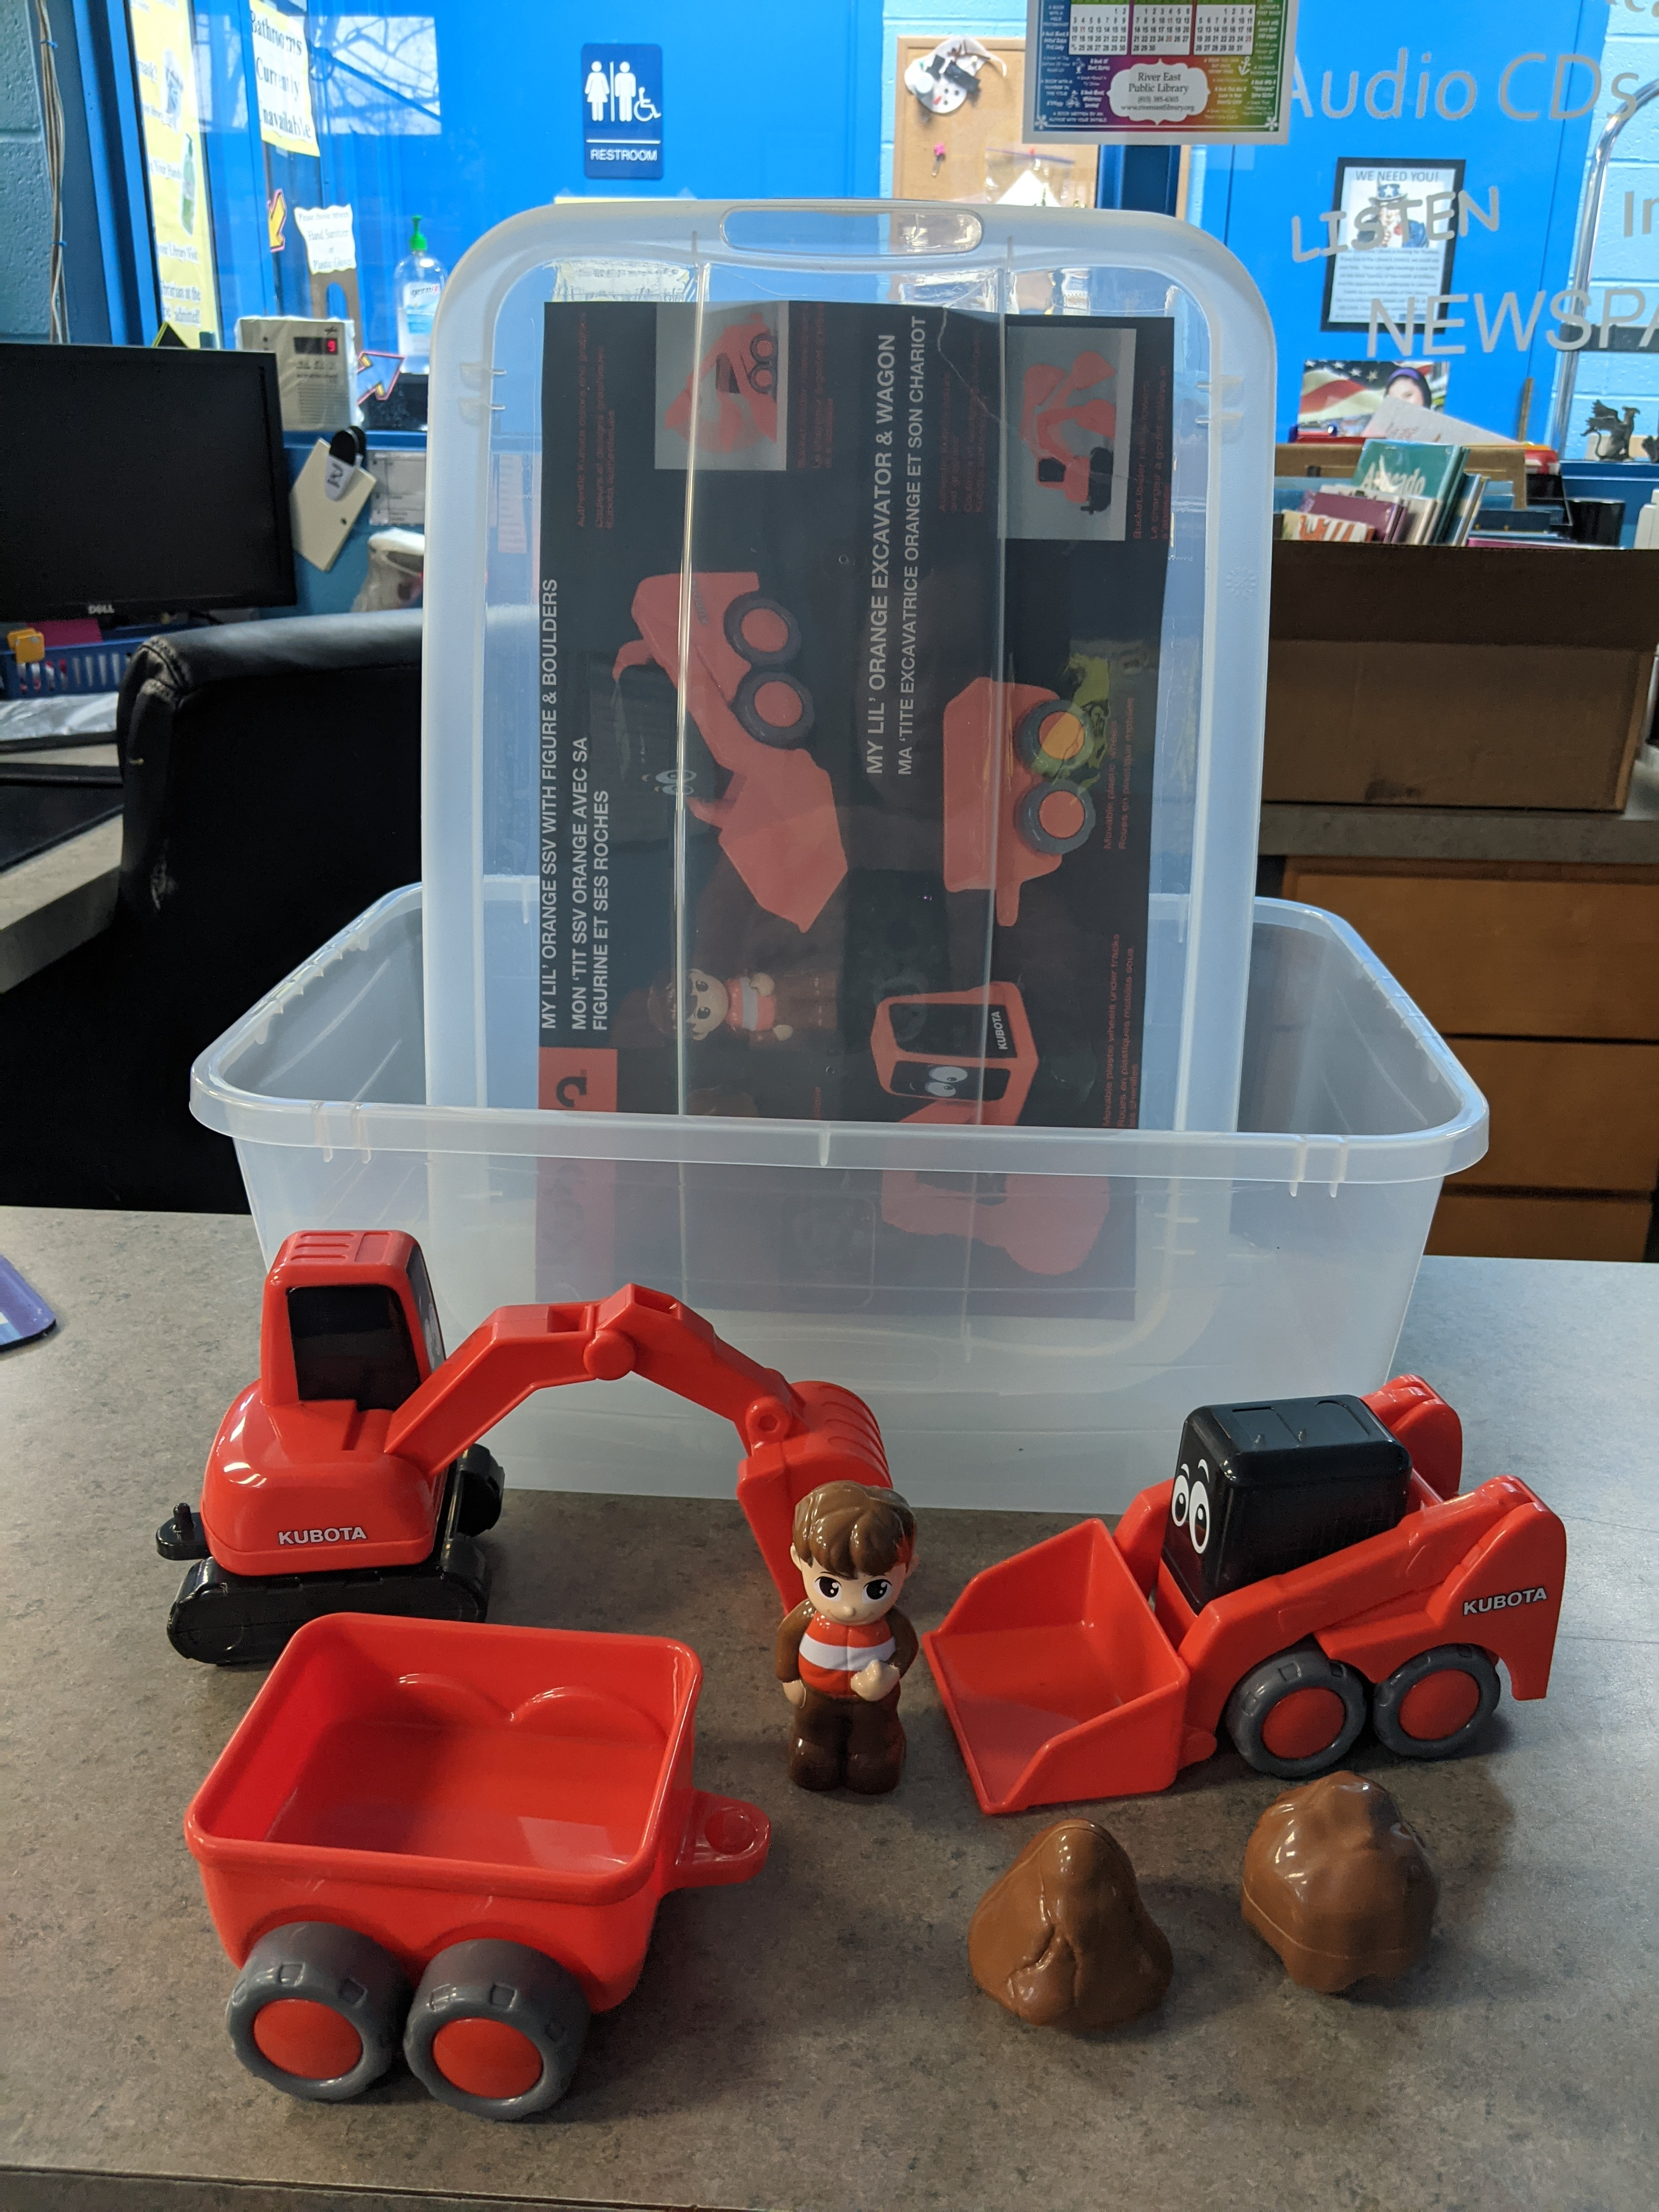 Image of an educational excavator toy